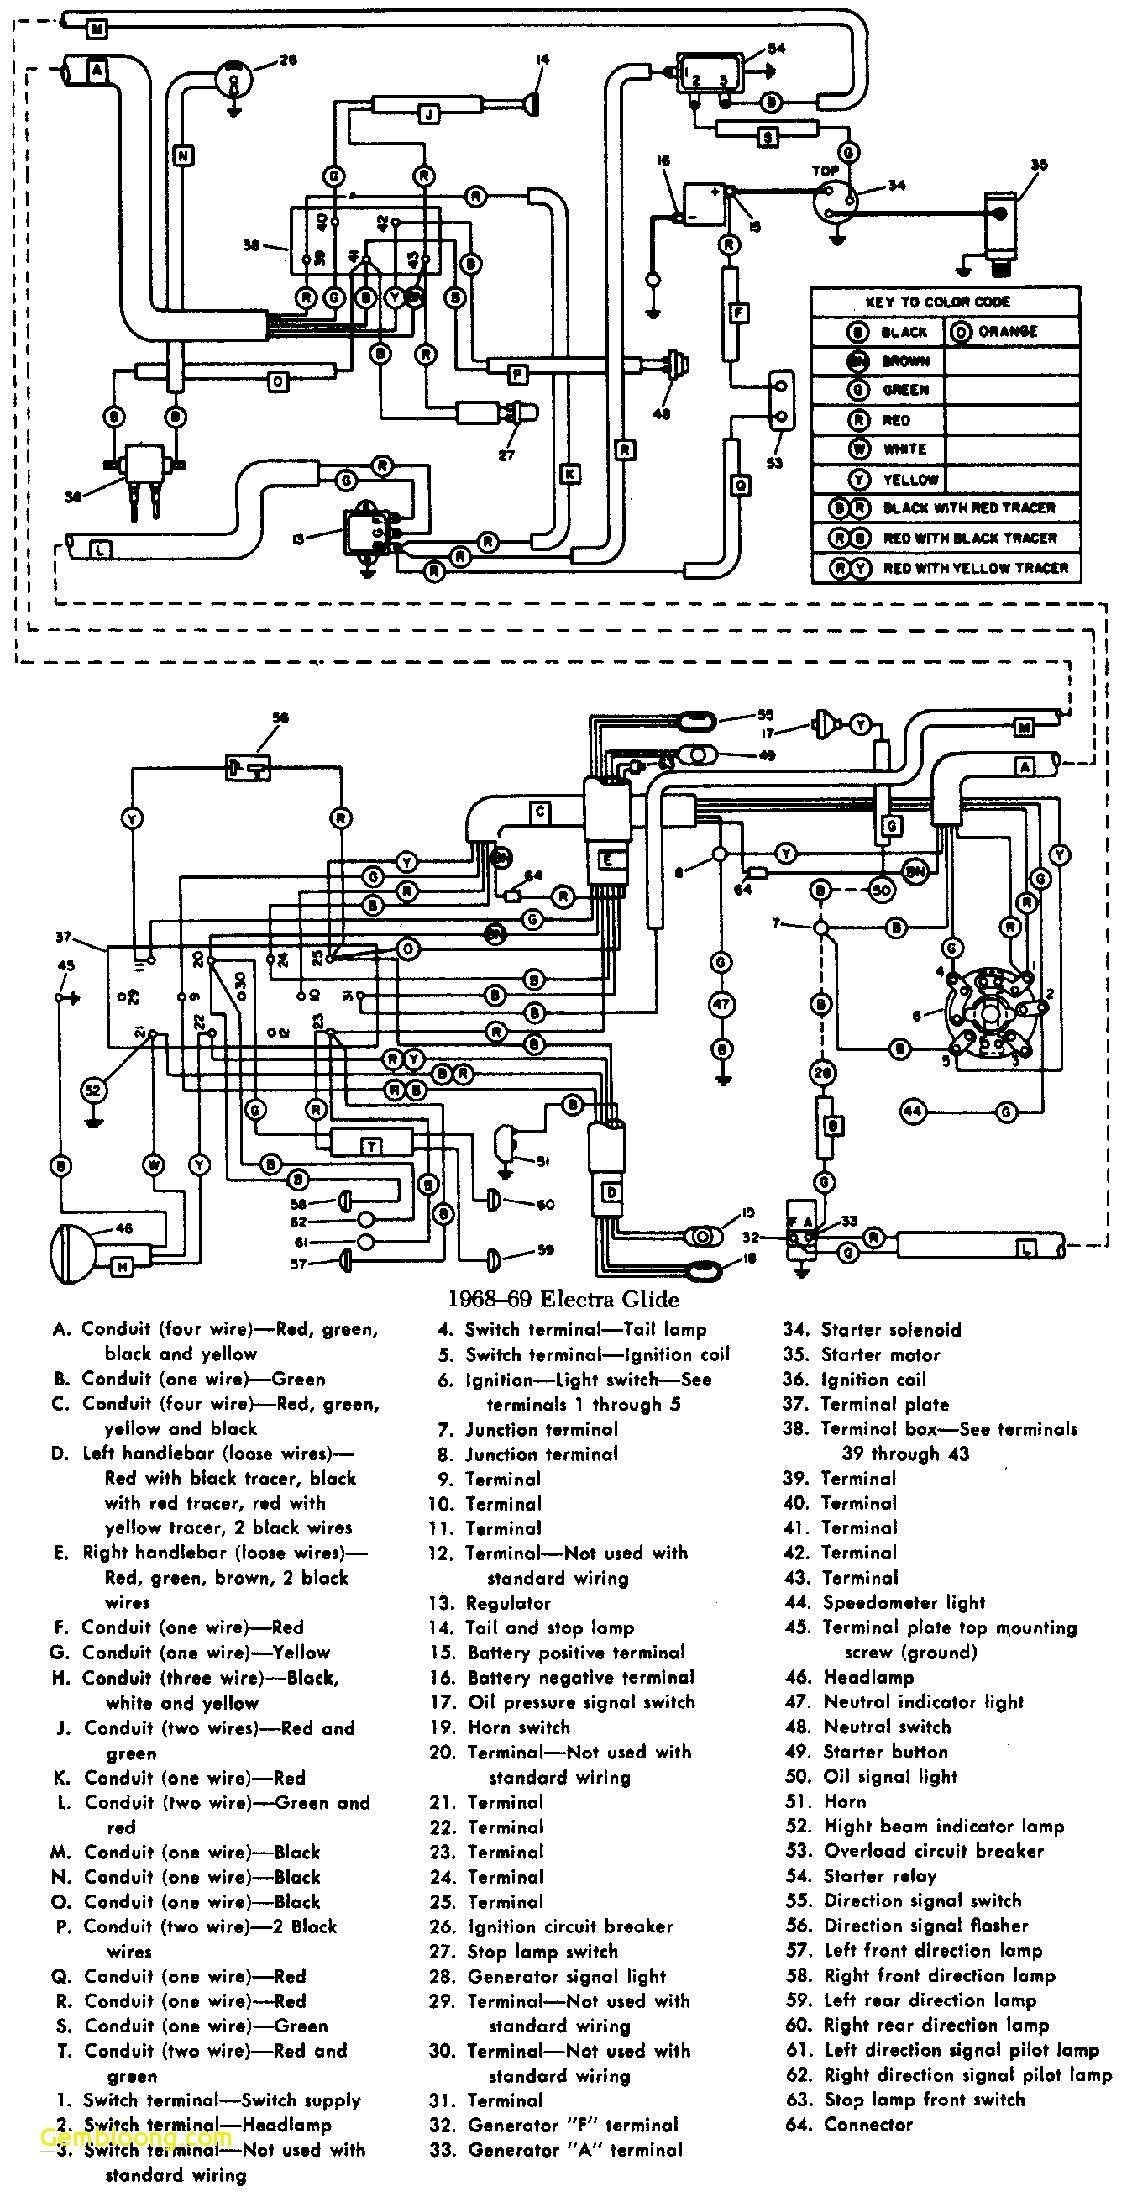 Ijnition Wiring Diagram for 2007 Dodge Ramtruck Unique Gibson Sg Custom Wiring Diagram with Images Of Ijnition Wiring Diagram for 2007 Dodge Ramtruck